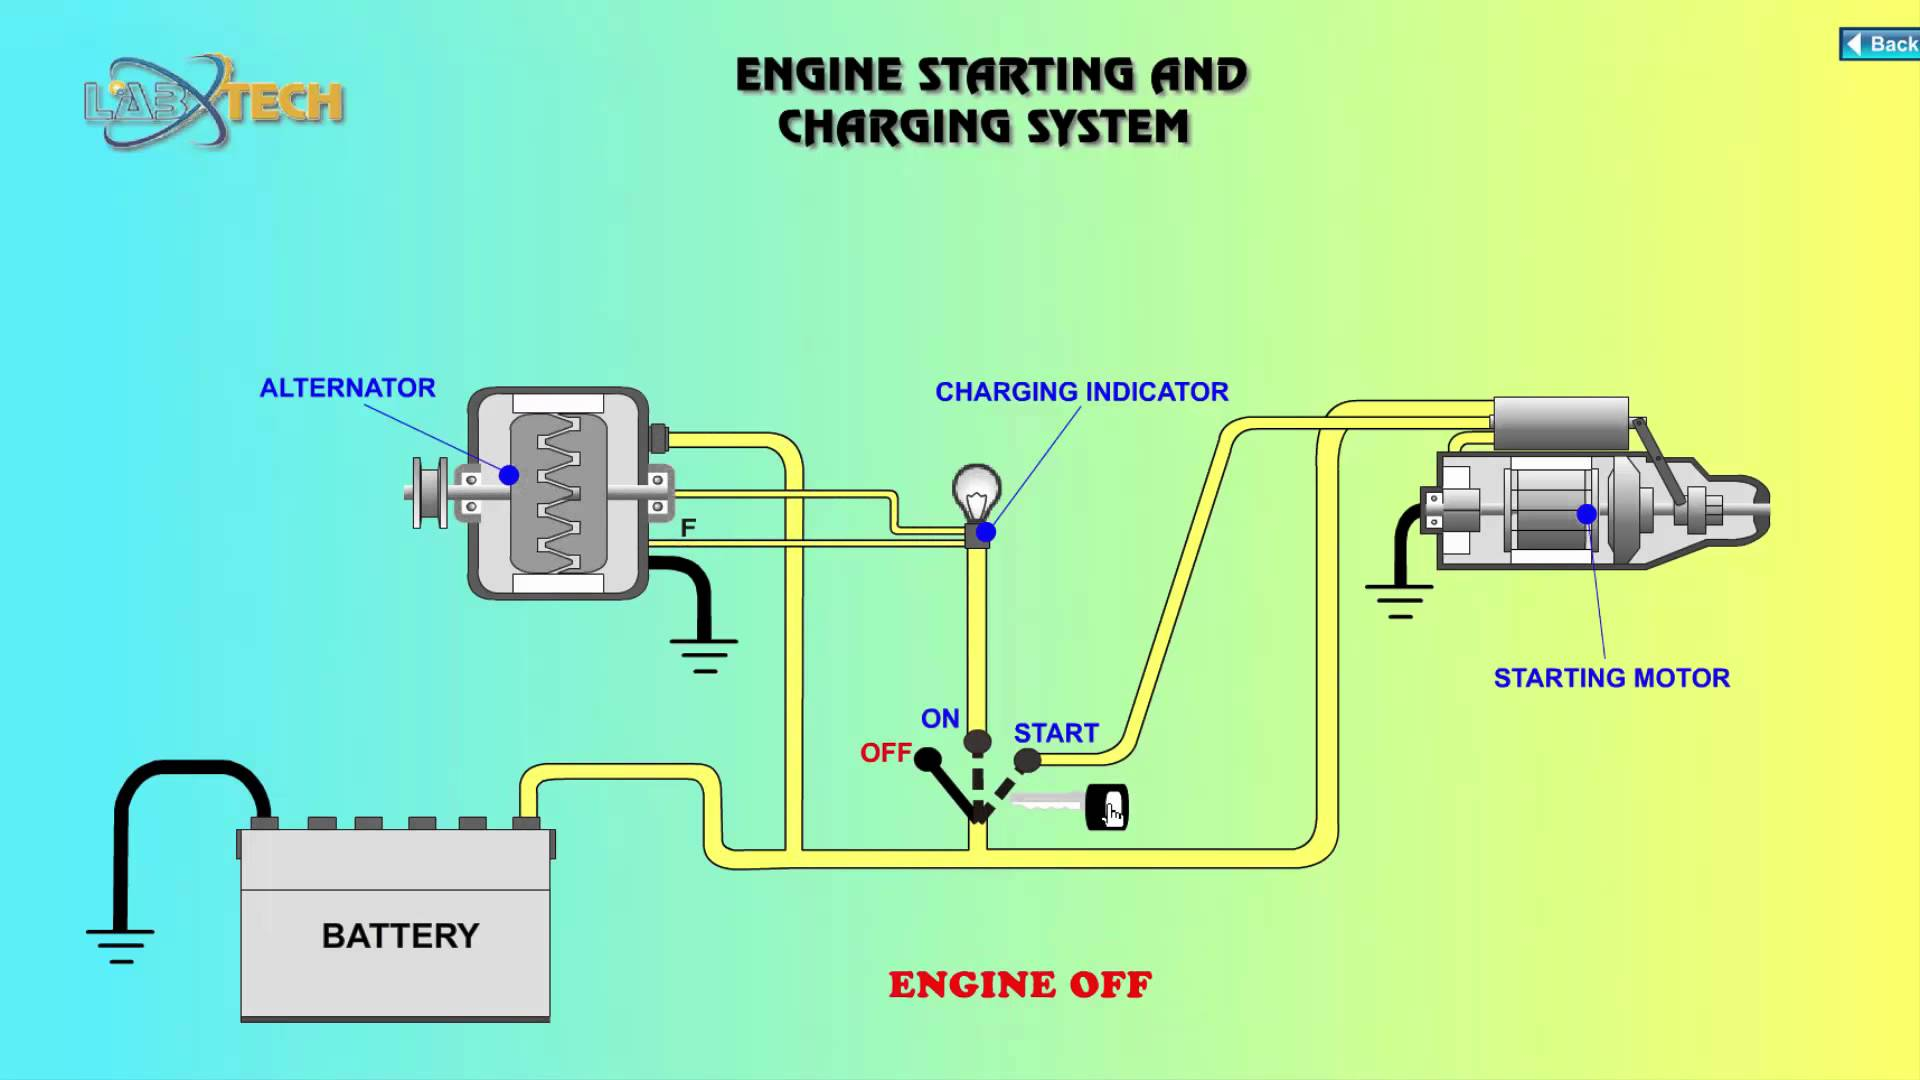 hight resolution of auto charging system diagram library of wiring diagram u2022 charging system diagram 2000 sable auto